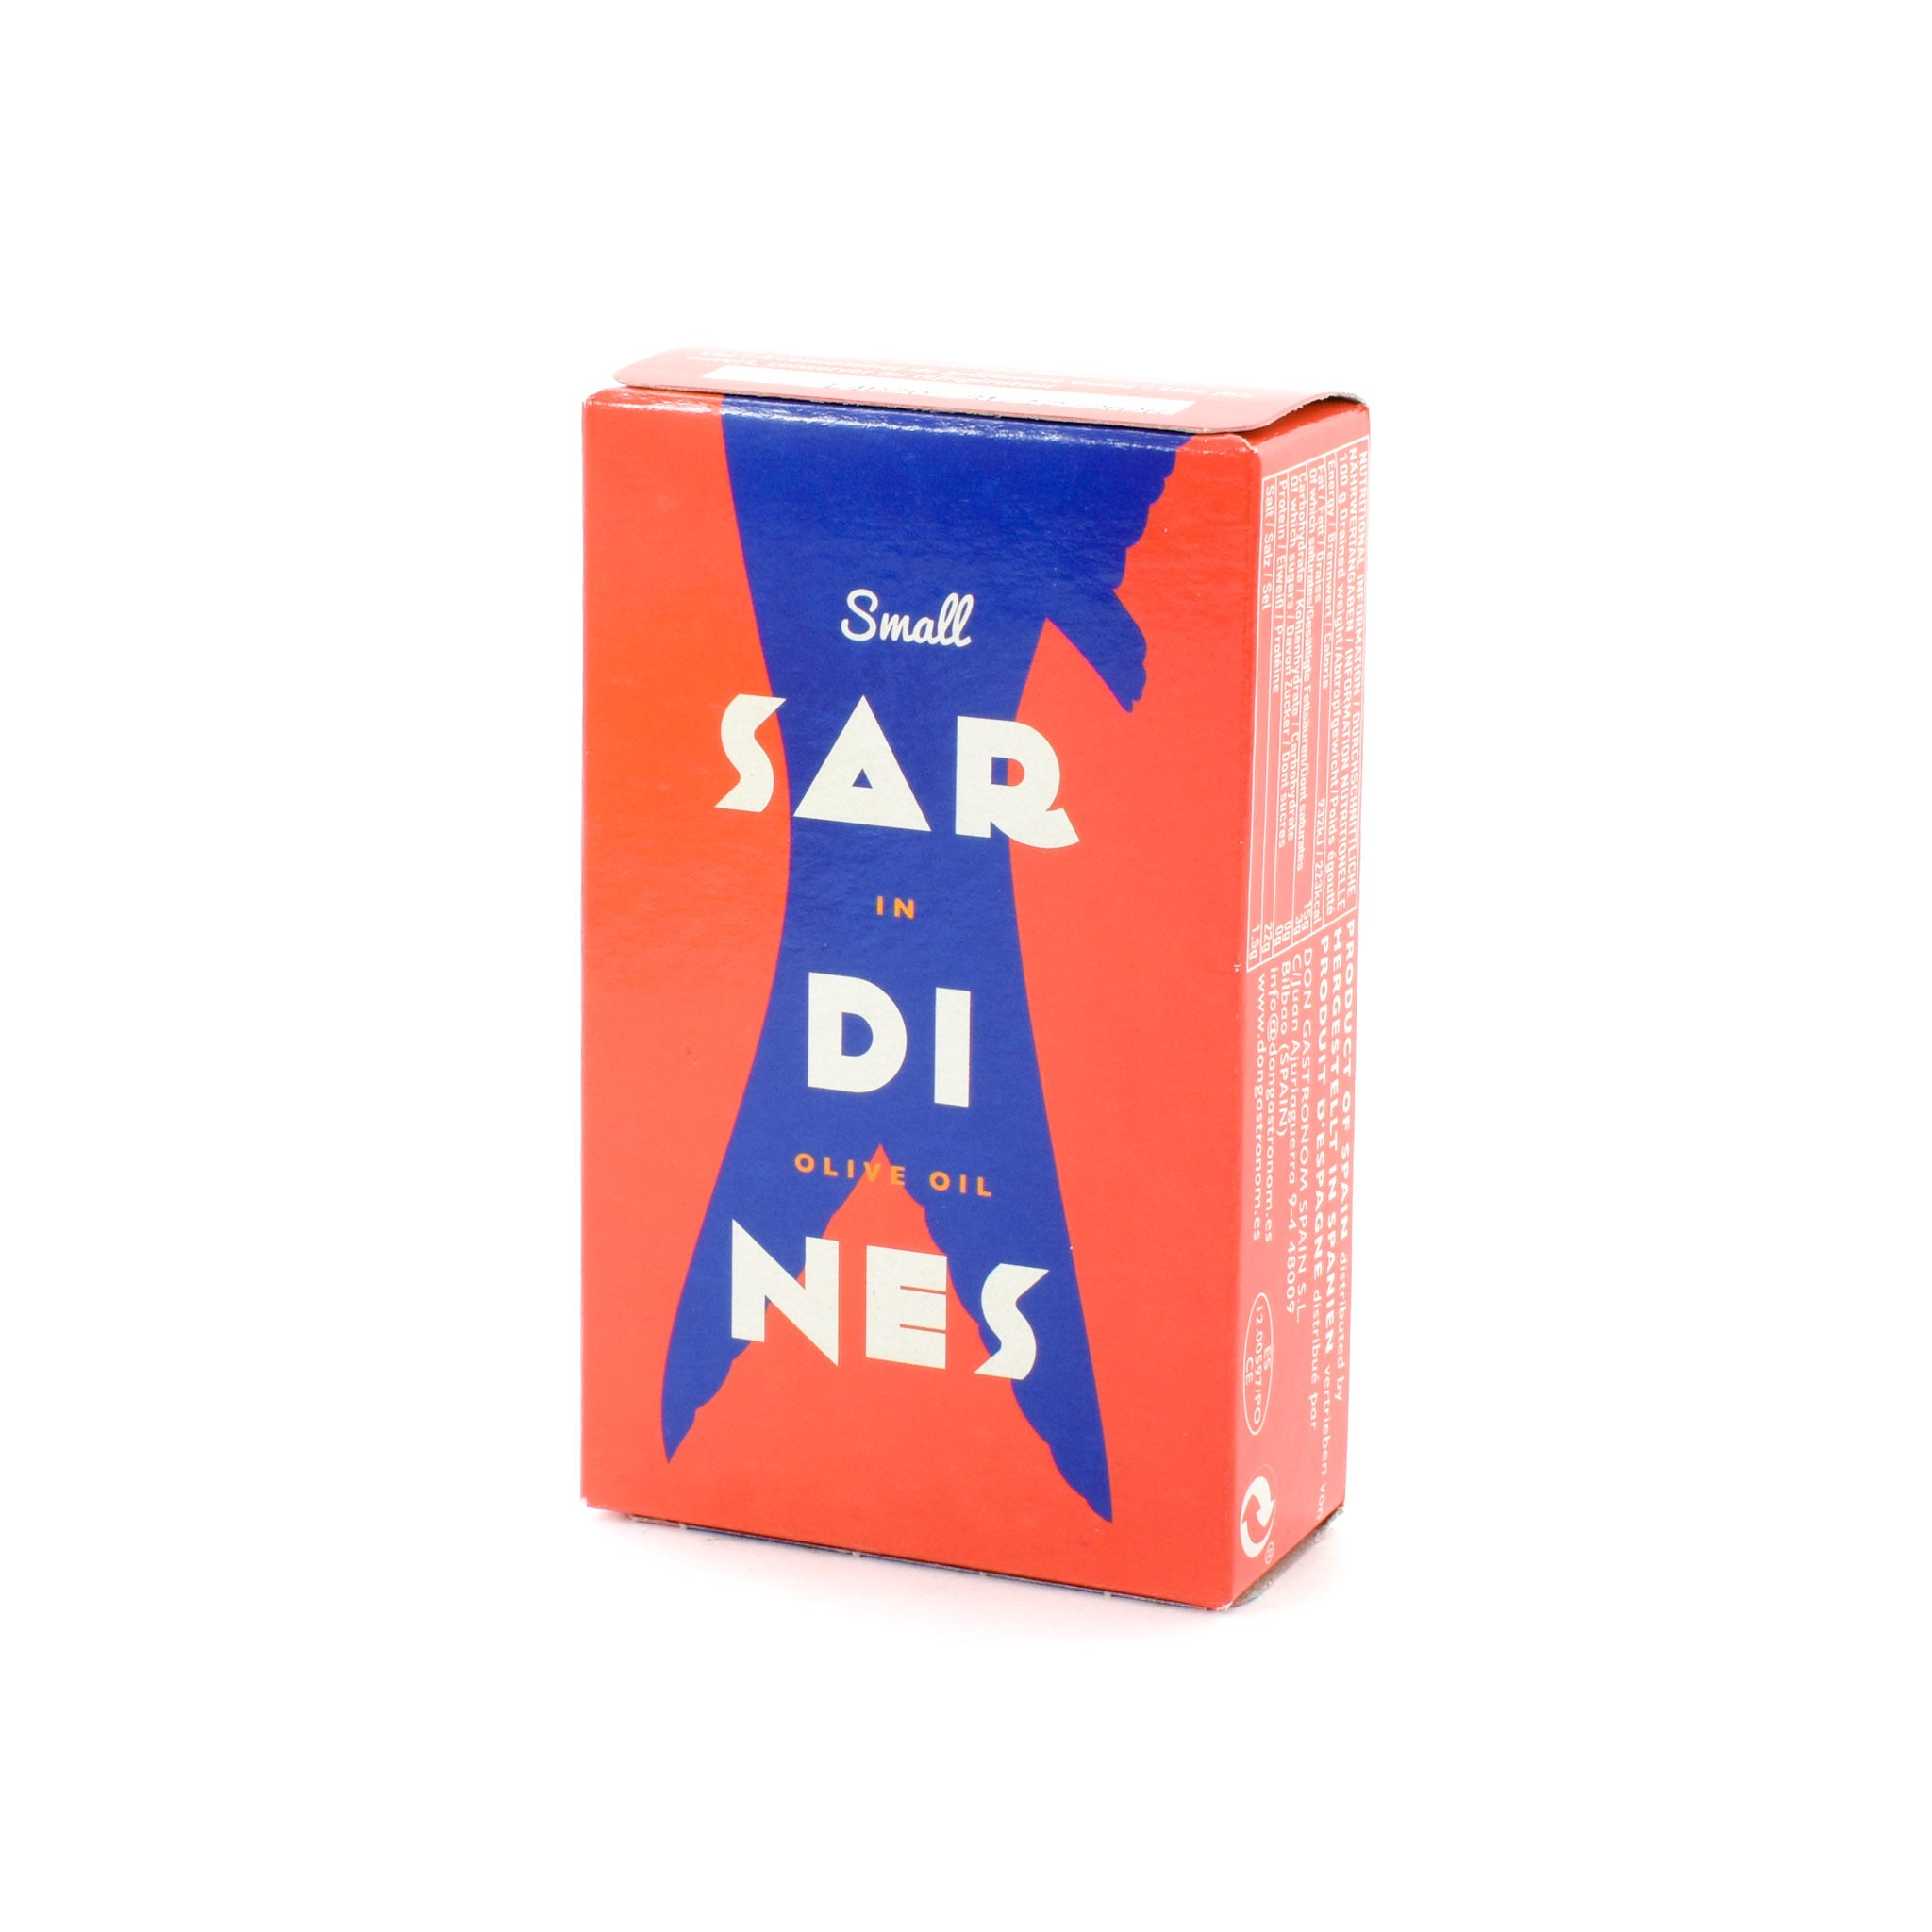 Small Sardines in Olive Oil 120g